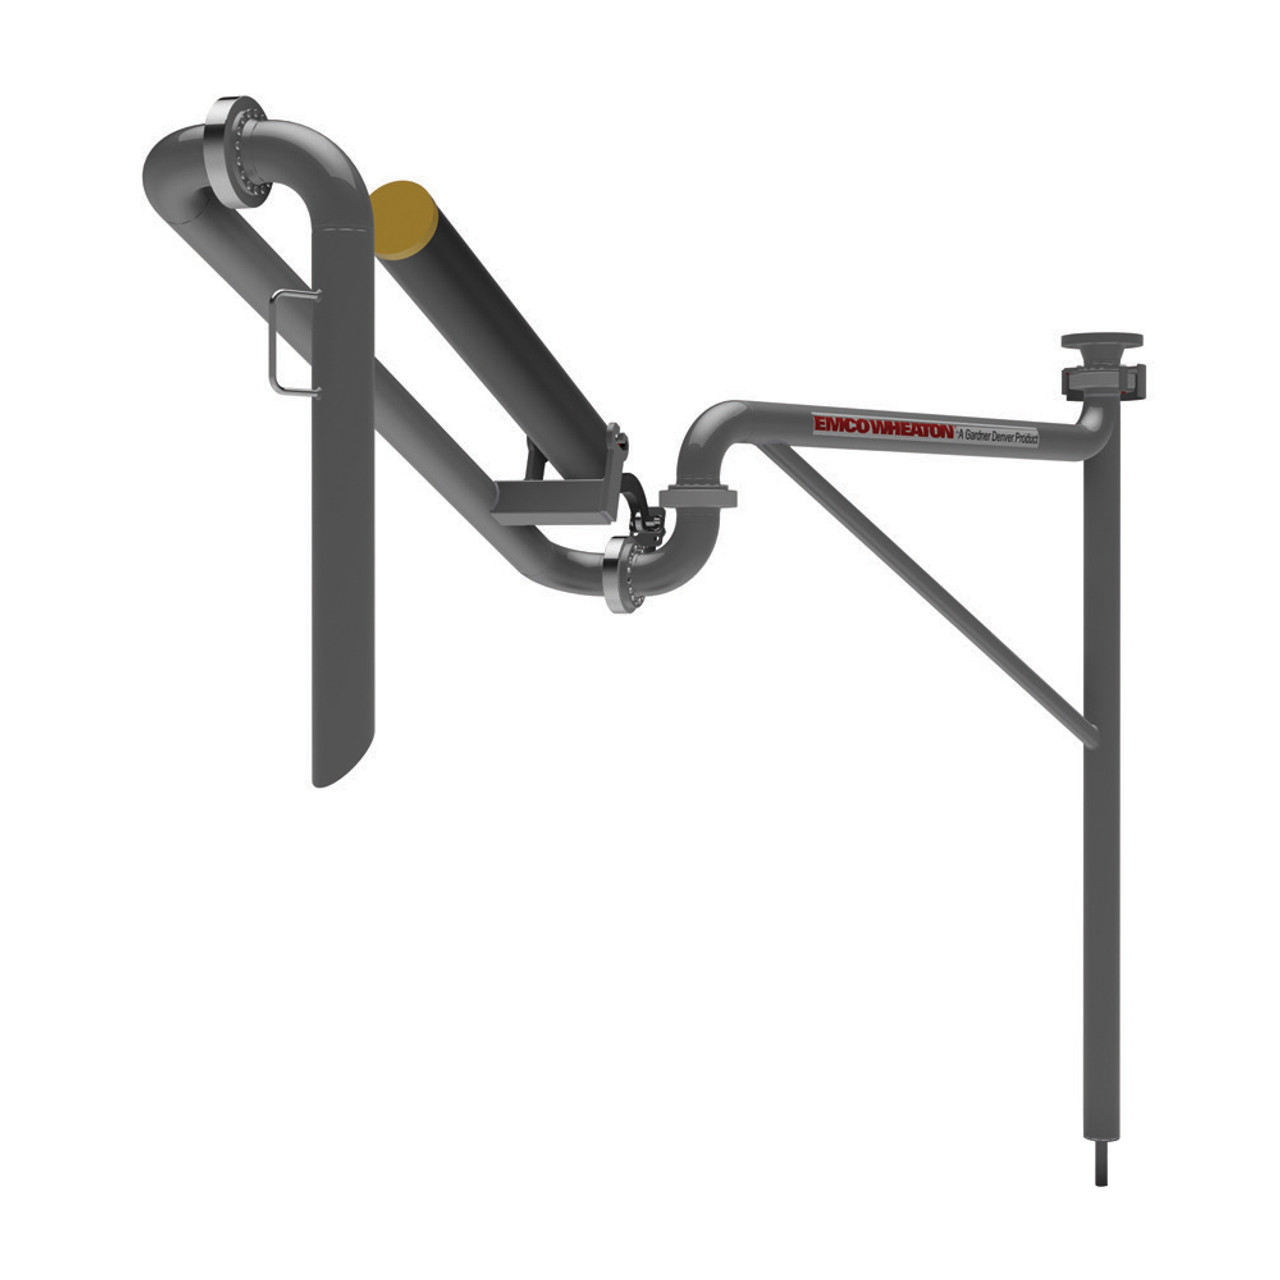 Emco Wheaton E2025 Carbon Steel Supported Boom Top Loading